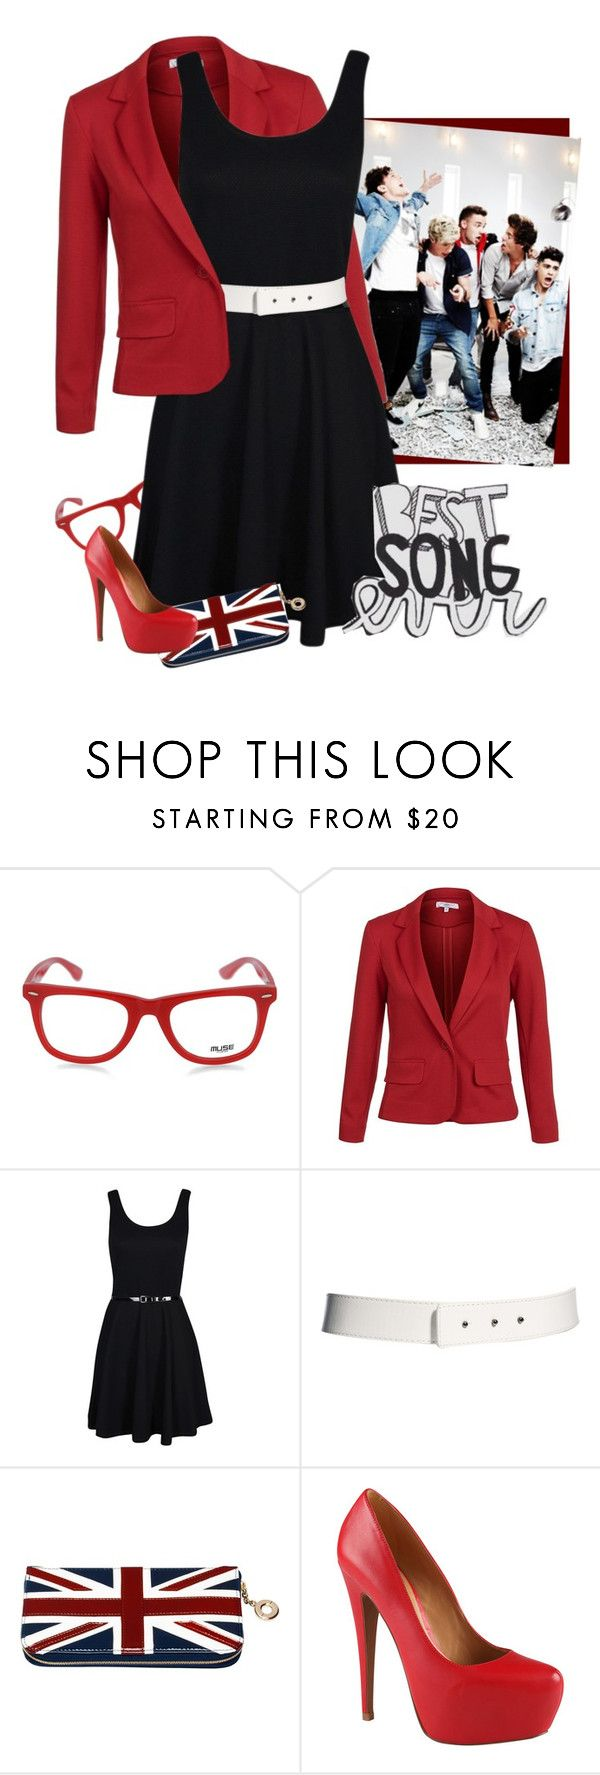 """Best Song Ever!!"" by annabelle-95 ❤ liked on Polyvore featuring Muse, Boohoo, ASOS, Aspinal of London and ALDO"